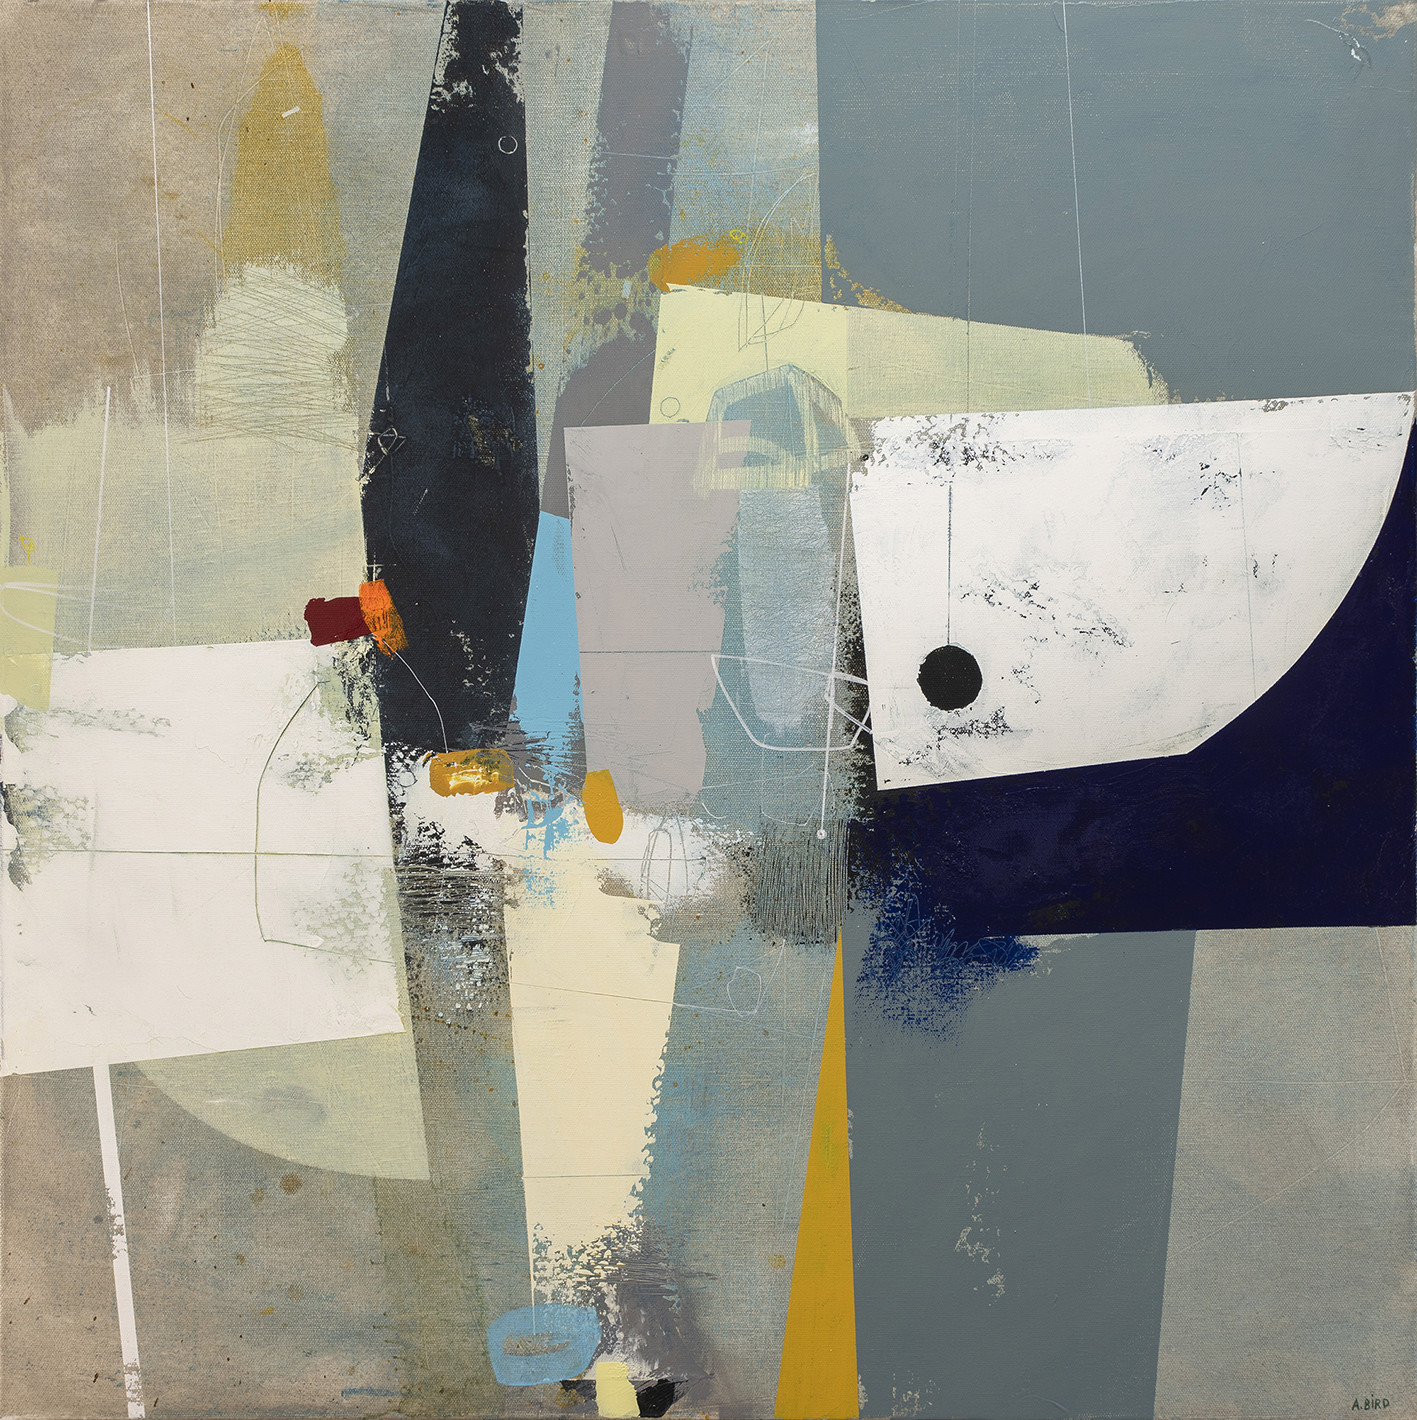 <span class=&#34;link fancybox-details-link&#34;><a href=&#34;/artists/77-andrew-bird/works/6206-andrew-bird-tall-tale-2019/&#34;>View Detail Page</a></span><div class=&#34;artist&#34;><strong>Andrew Bird</strong></div> <div class=&#34;title&#34;><em>Tall Tale</em>, 2019</div> <div class=&#34;signed_and_dated&#34;>signed, titled and dated on reverse</div> <div class=&#34;medium&#34;>acrylic on canvas</div> <div class=&#34;dimensions&#34;>h 76 x w 76 cm<br /> 29 7/8 x 29 7/8 in</div><div class=&#34;price&#34;>£2,500.00</div><div class=&#34;copyright_line&#34;>Own Art: £ 250 x 10 Months, 0% APR</div>